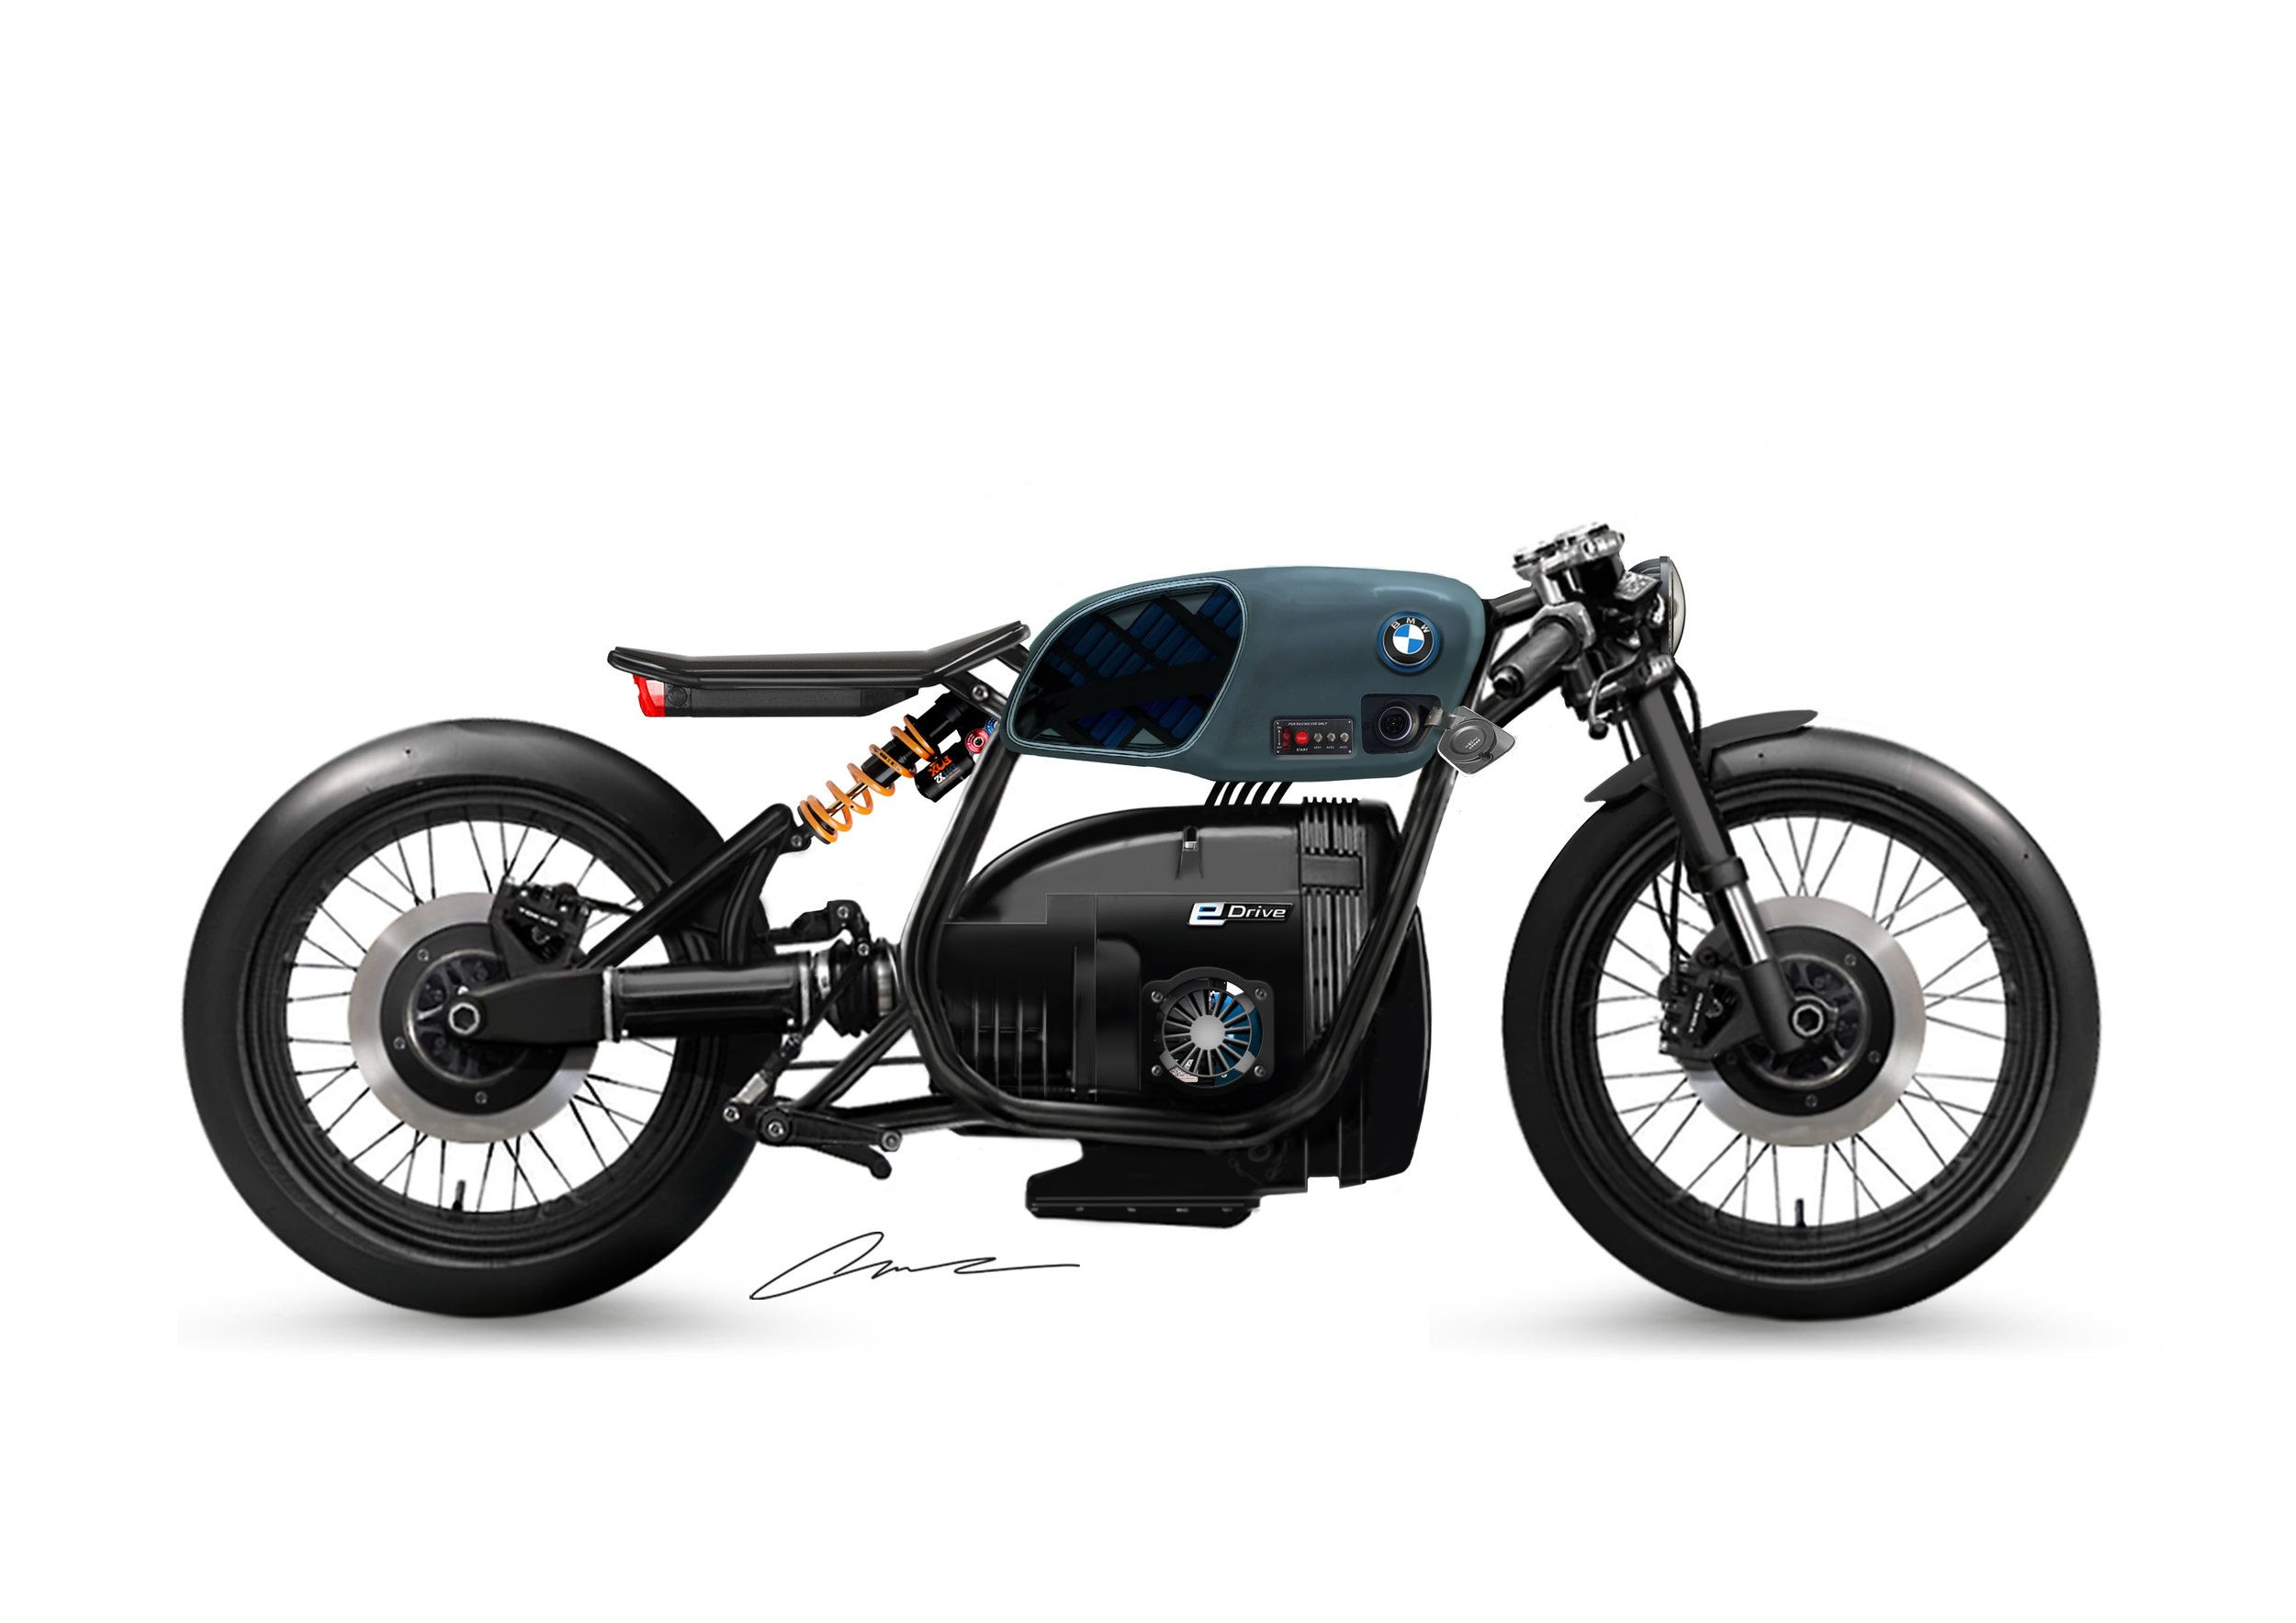 Bmw Er80 Electric Motorcycle Form Study By Luuc Muis Electric